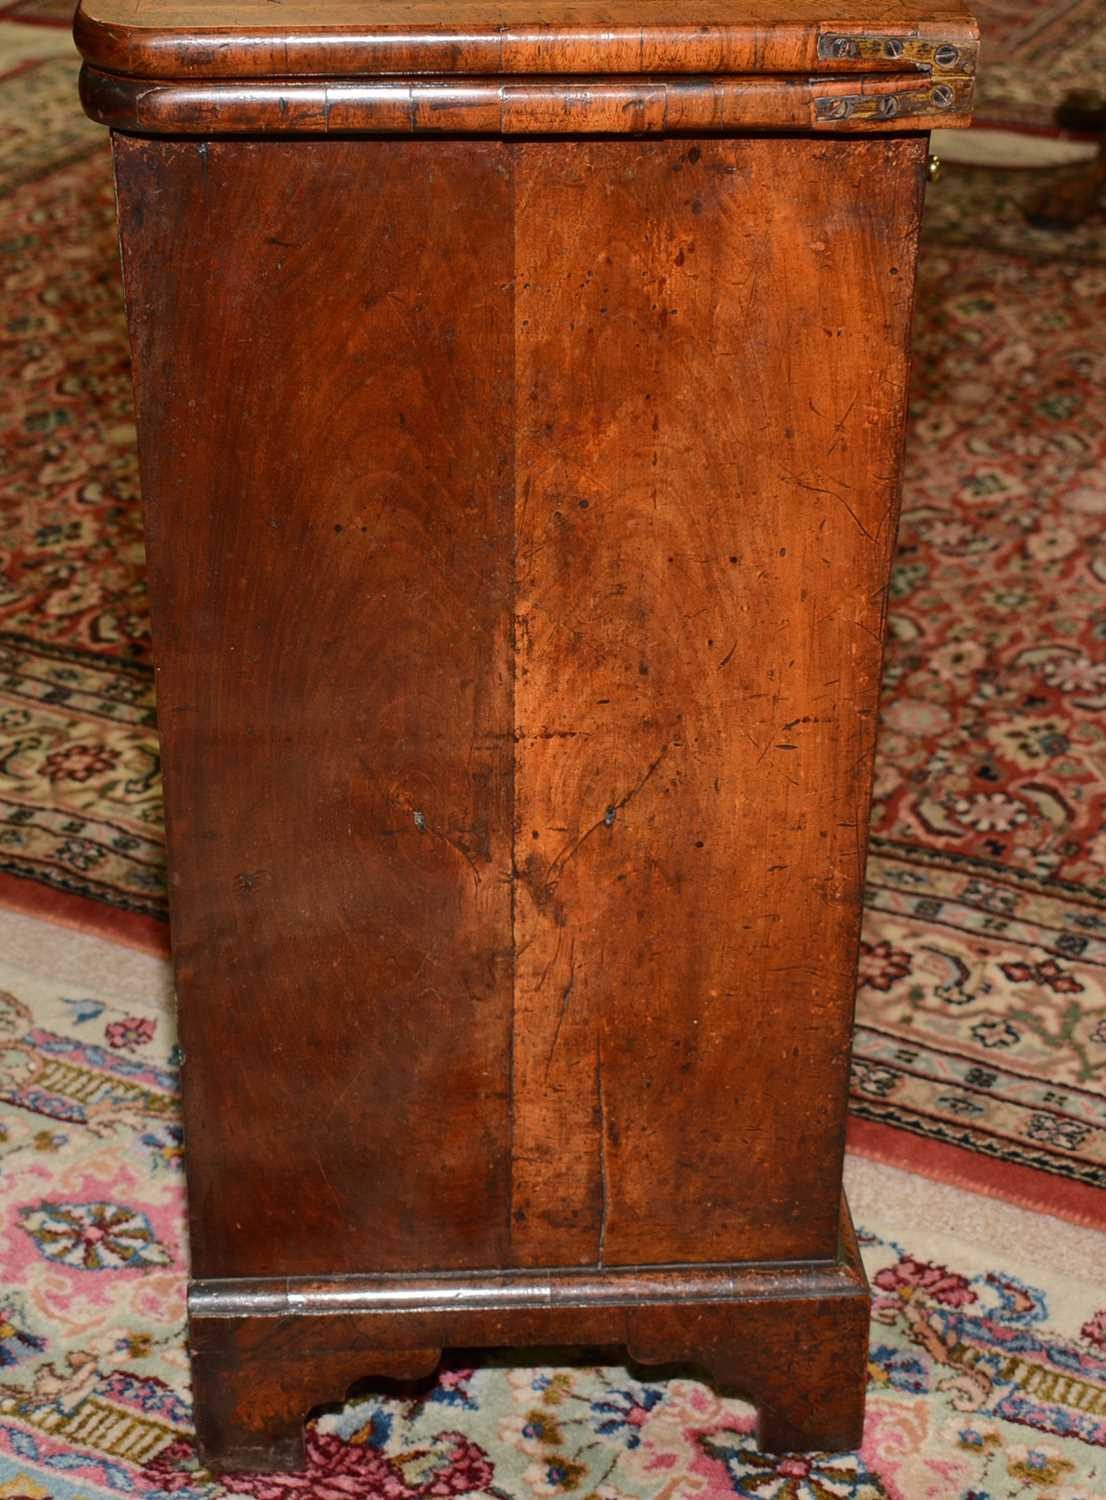 Early 18th Century walnut bachelors chest - Image 8 of 39